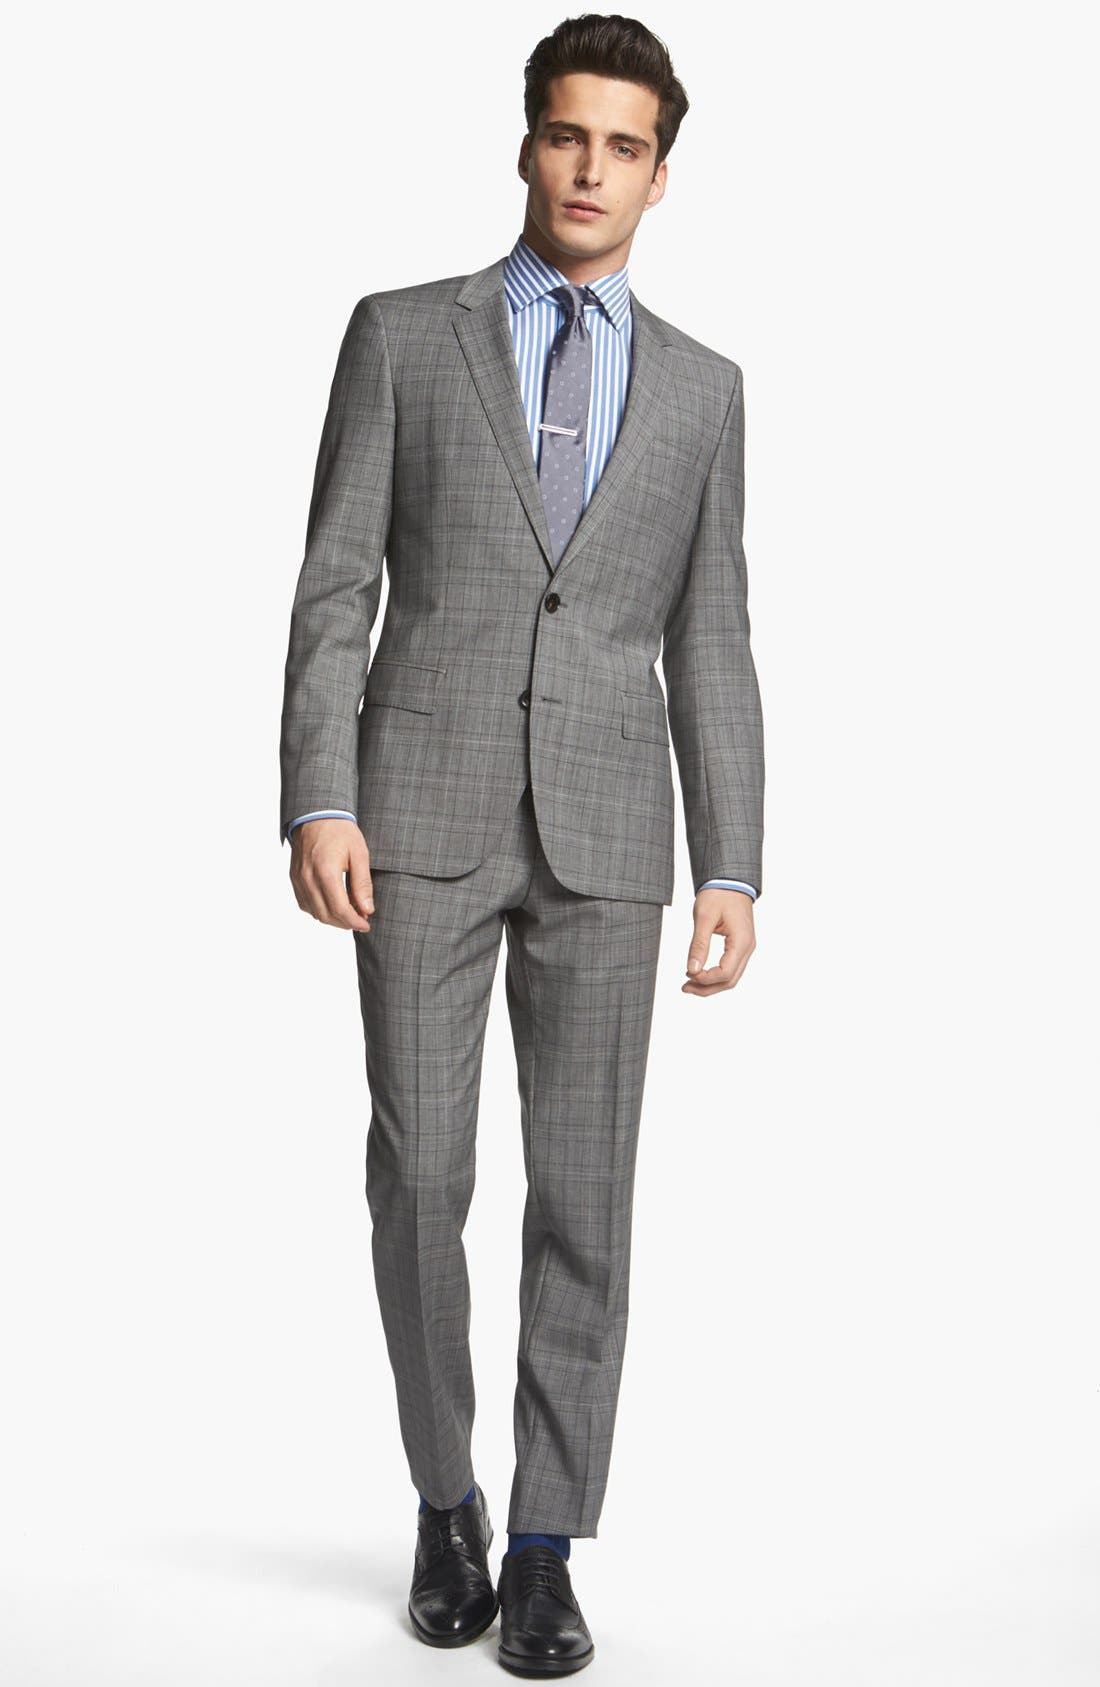 Alternate Image 1 Selected - BOSS HUGO BOSS 'Huge/Genius' Extra Trim Fit Plaid Suit